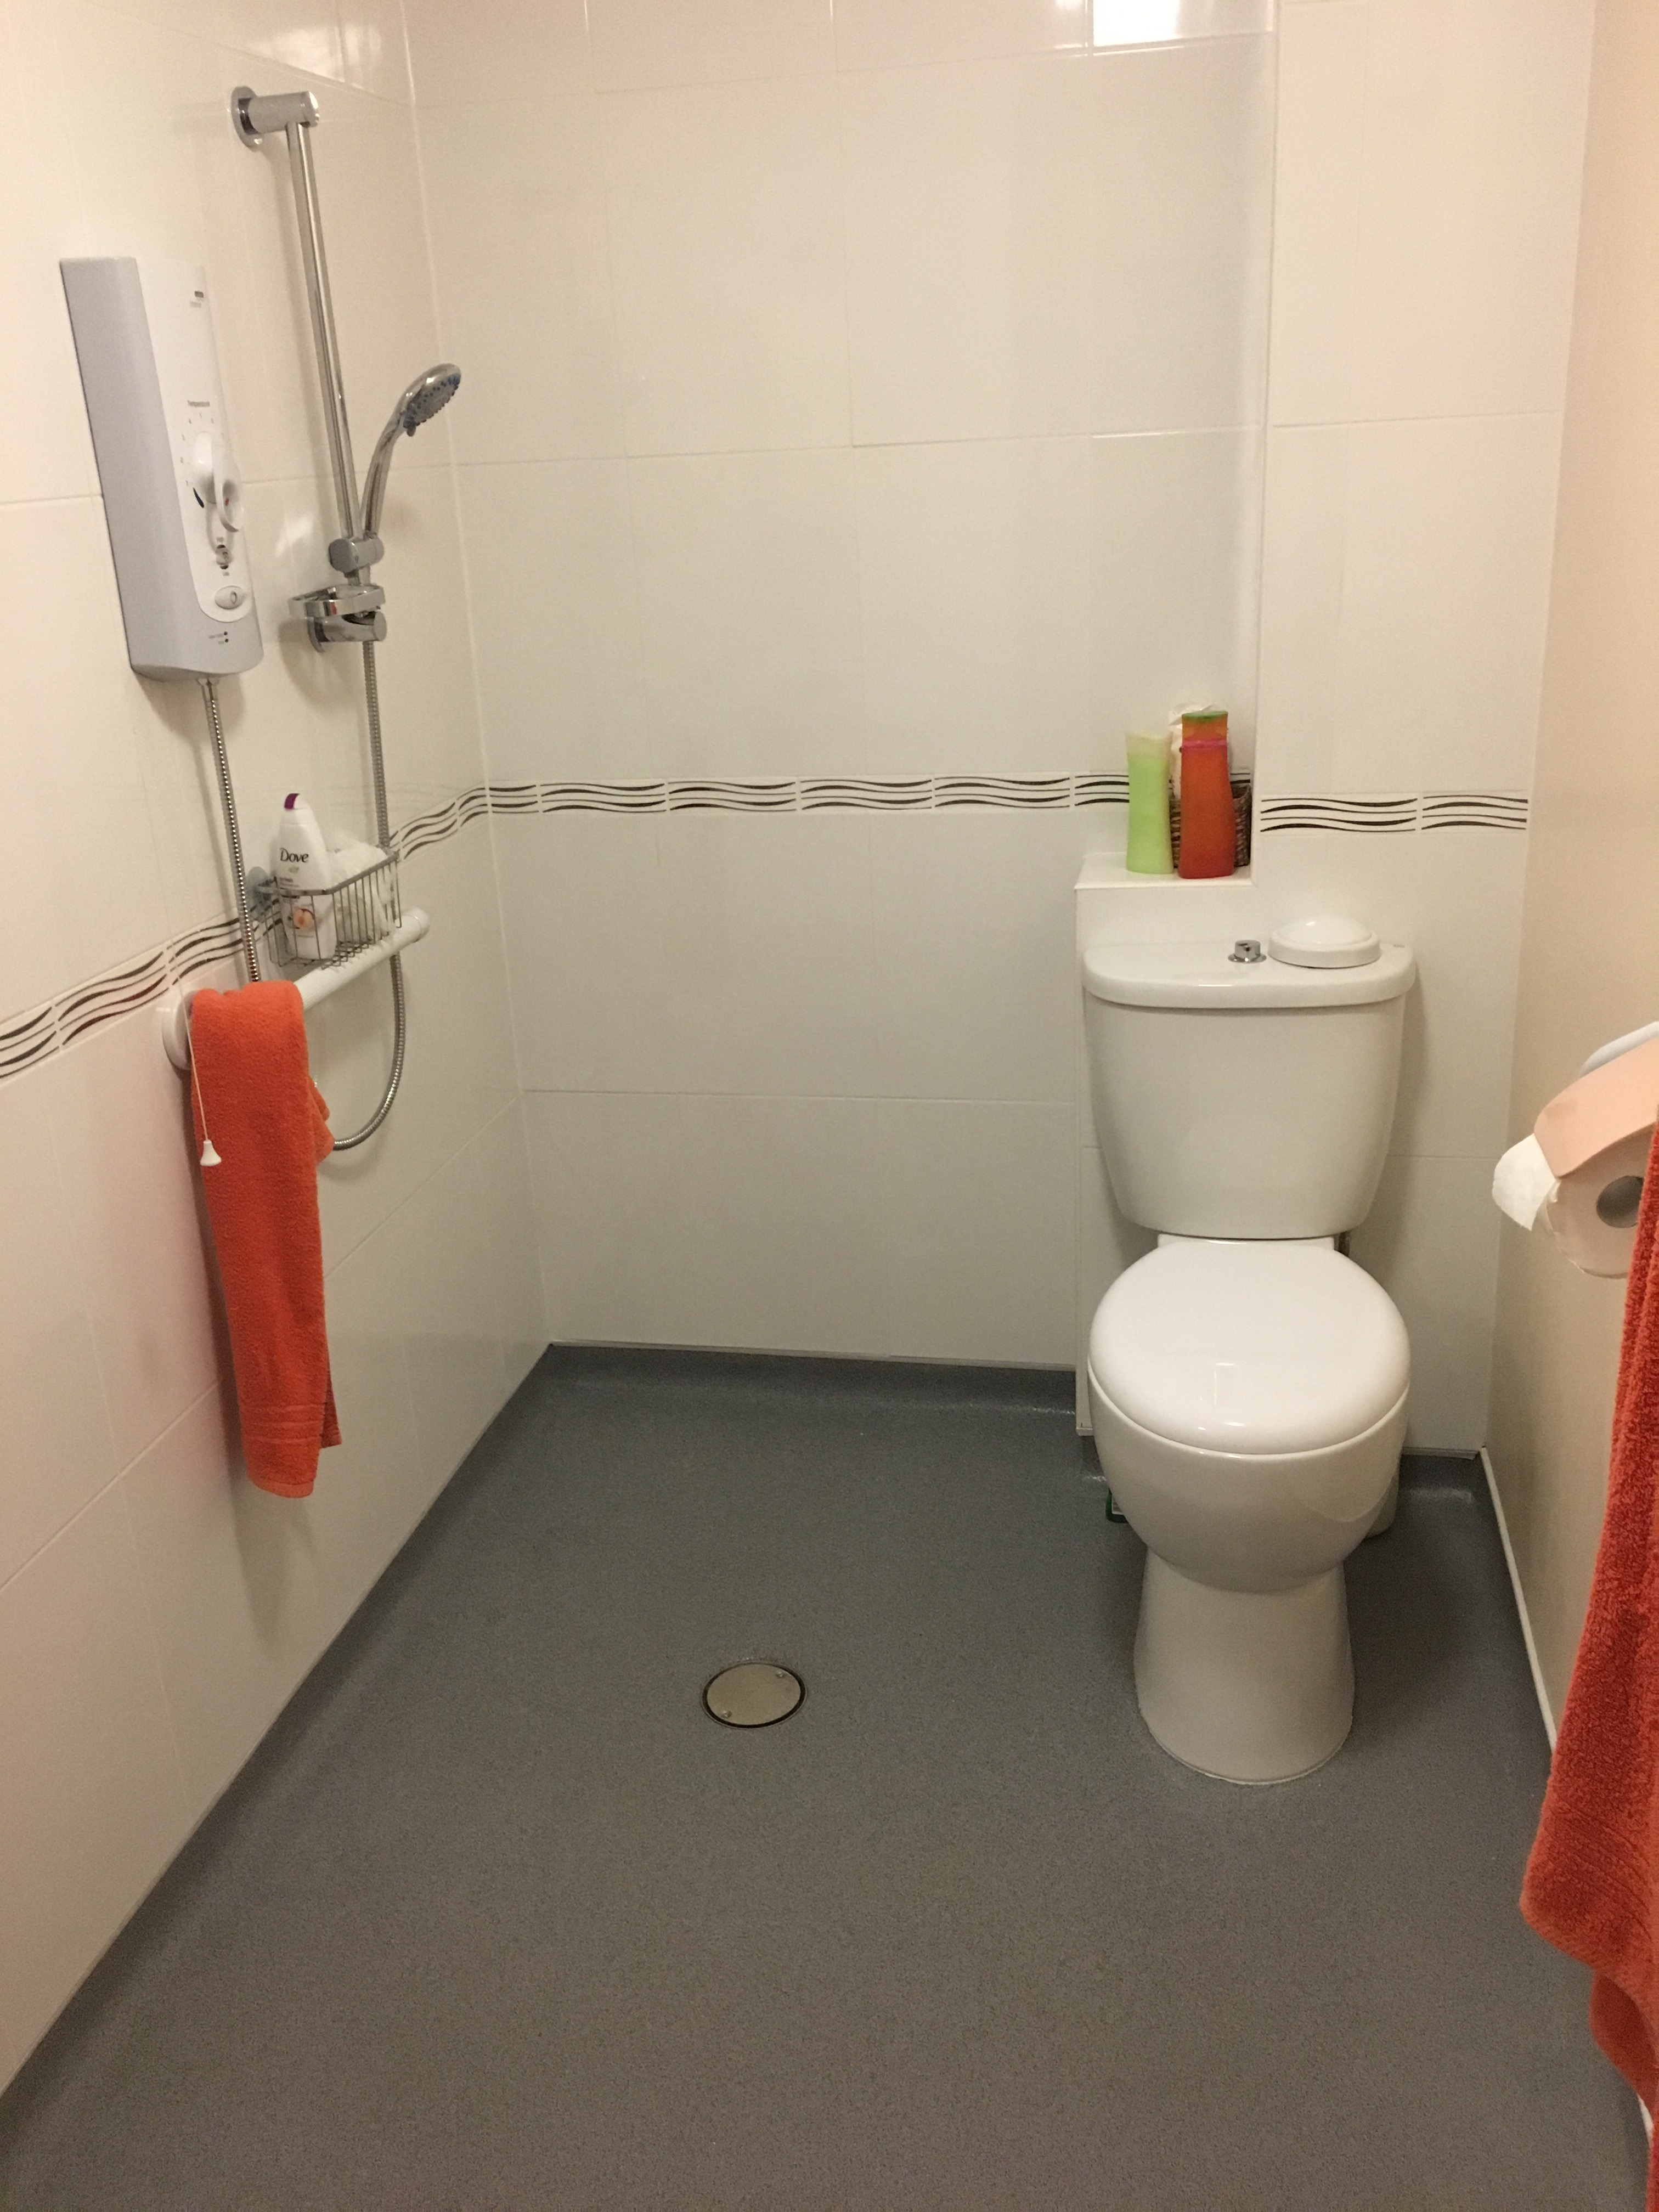 Wet Room Designs Uk: Apollo Design Mobility Wet Room Installation And Bathroom